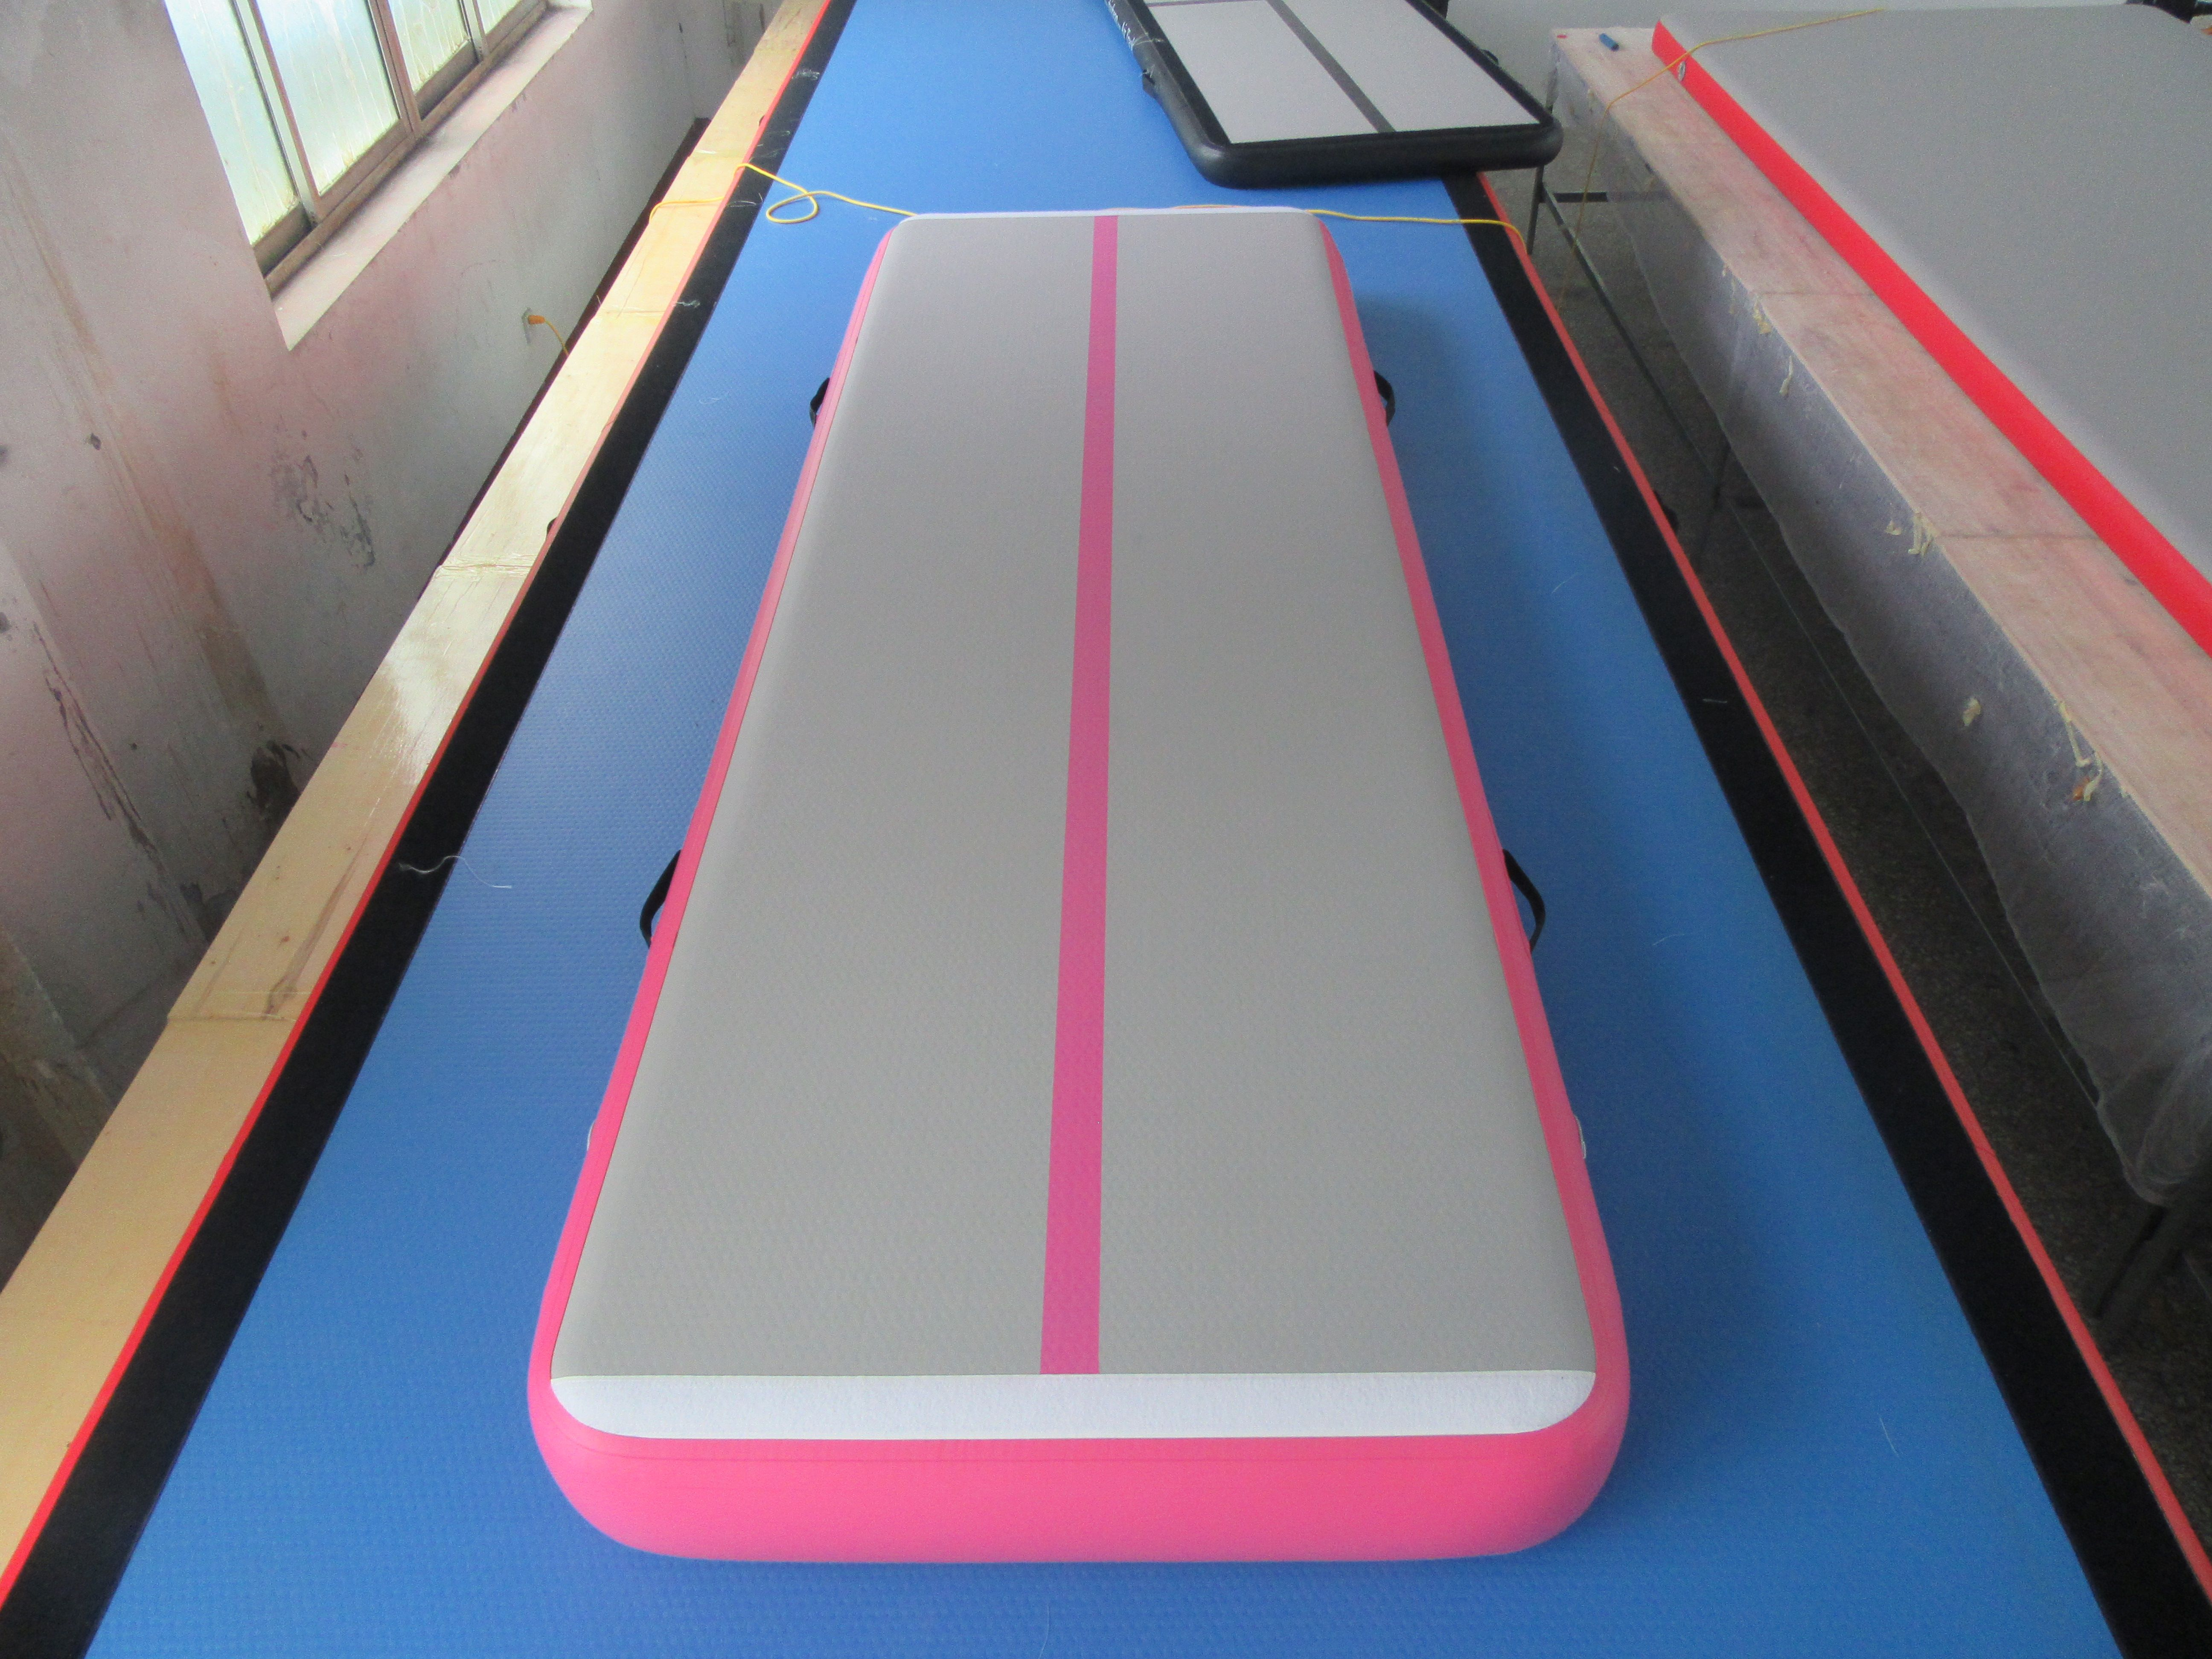 mats gymnastics more dismount tumbling views trak cheap tumbl mat